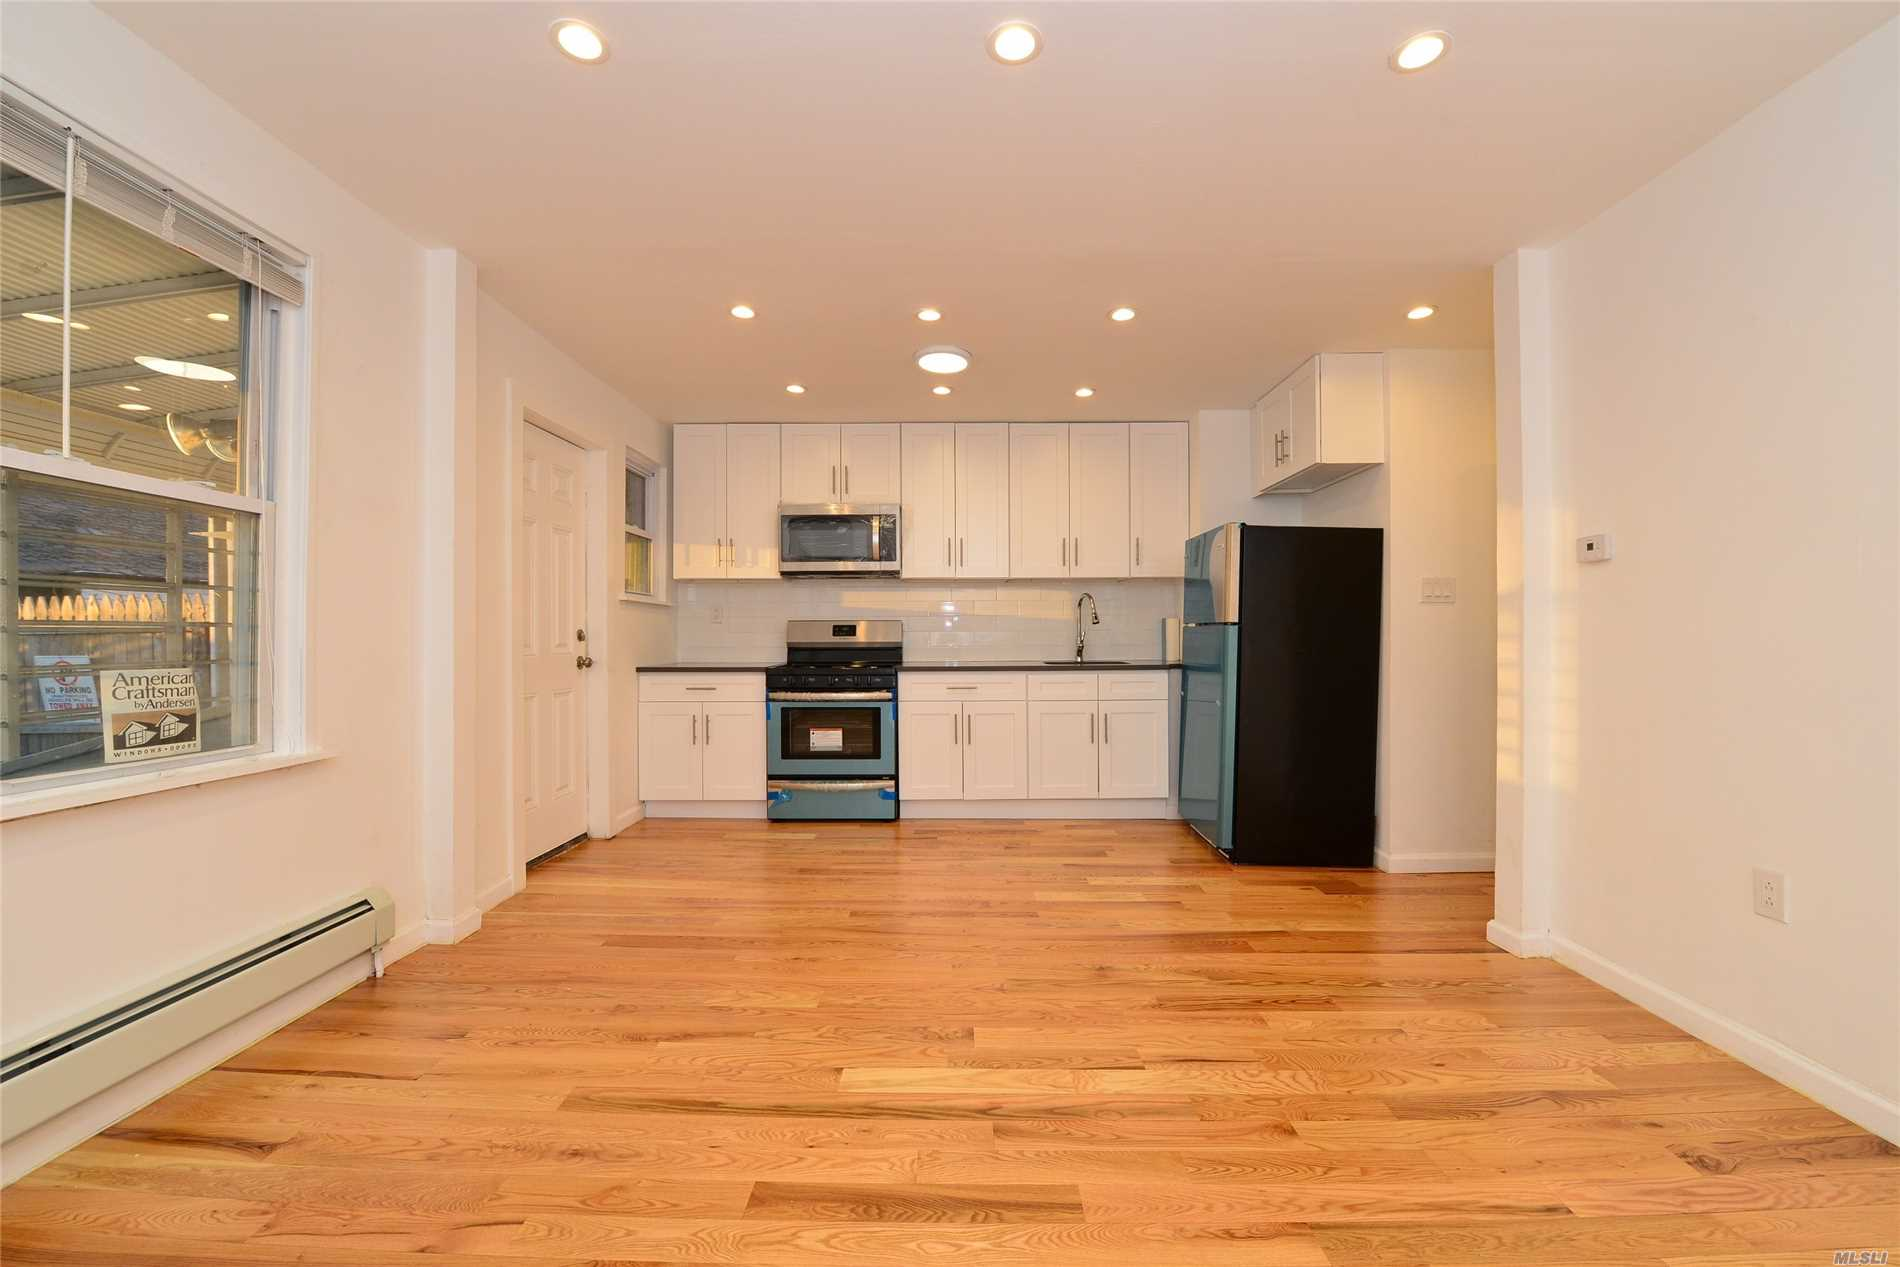 Fully Renovated Large 2 Family House in Prime Location.. All New: Plumbing, Electric, Floors, Kitchens, Bathrooms, Etc. Private Backyard. Must See to Appreciate.